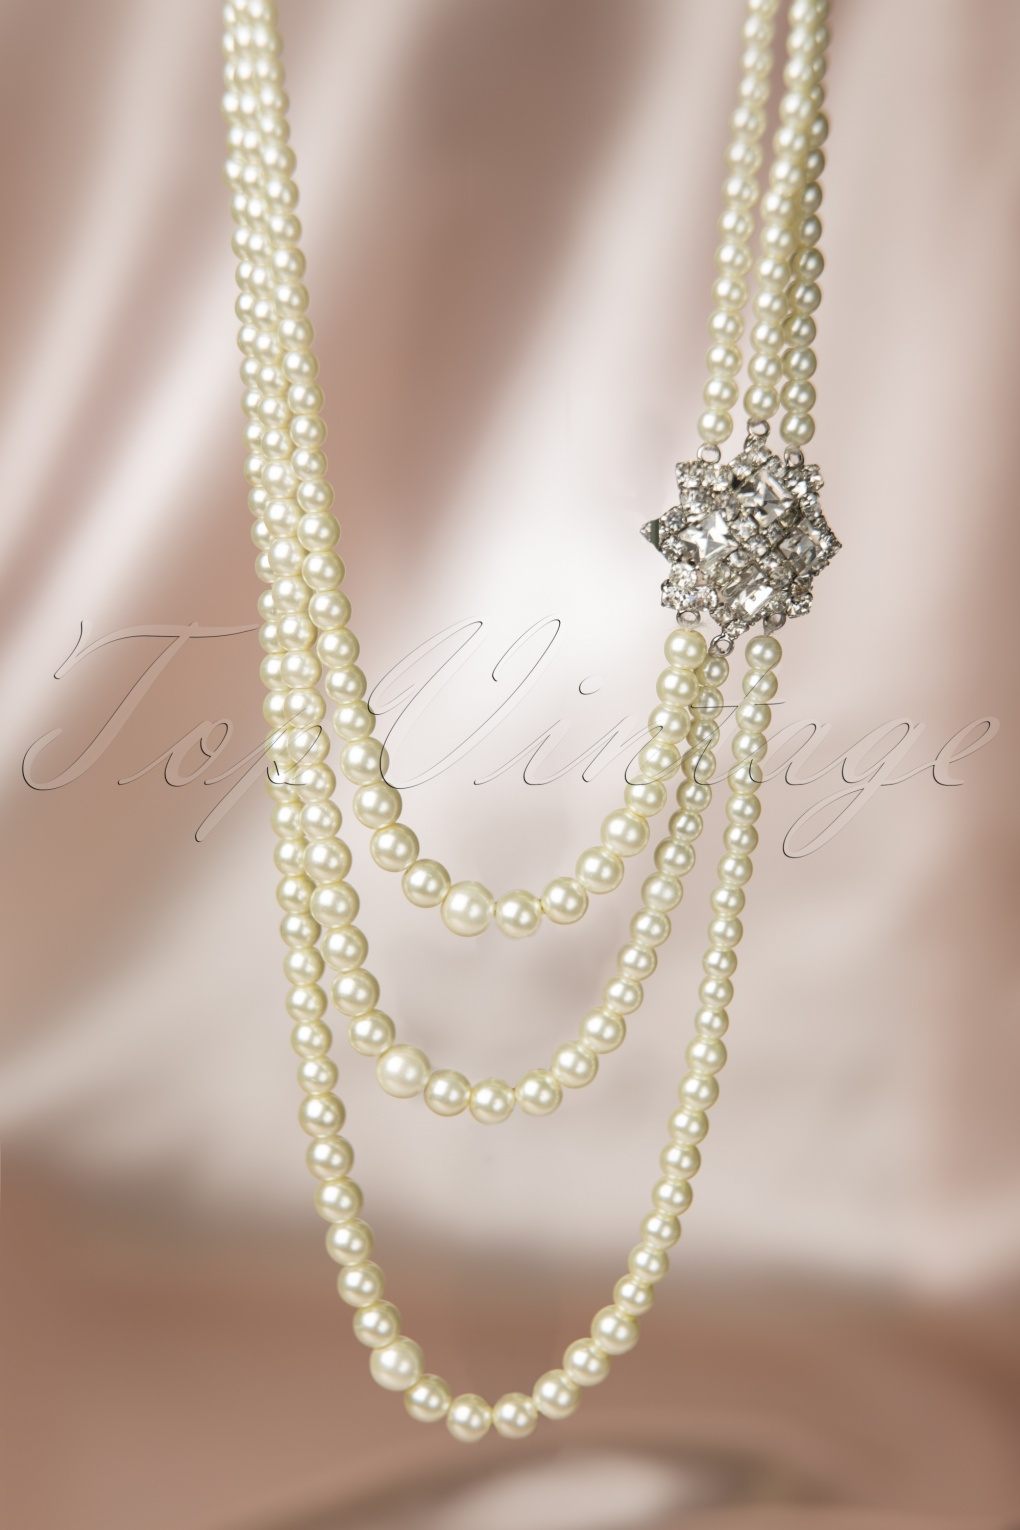 New 1920s Costume Jewelry- Earrings, Necklaces, Bracelets 20s Paris Pearls Crystal Necklace £56.86 AT vintagedancer.com